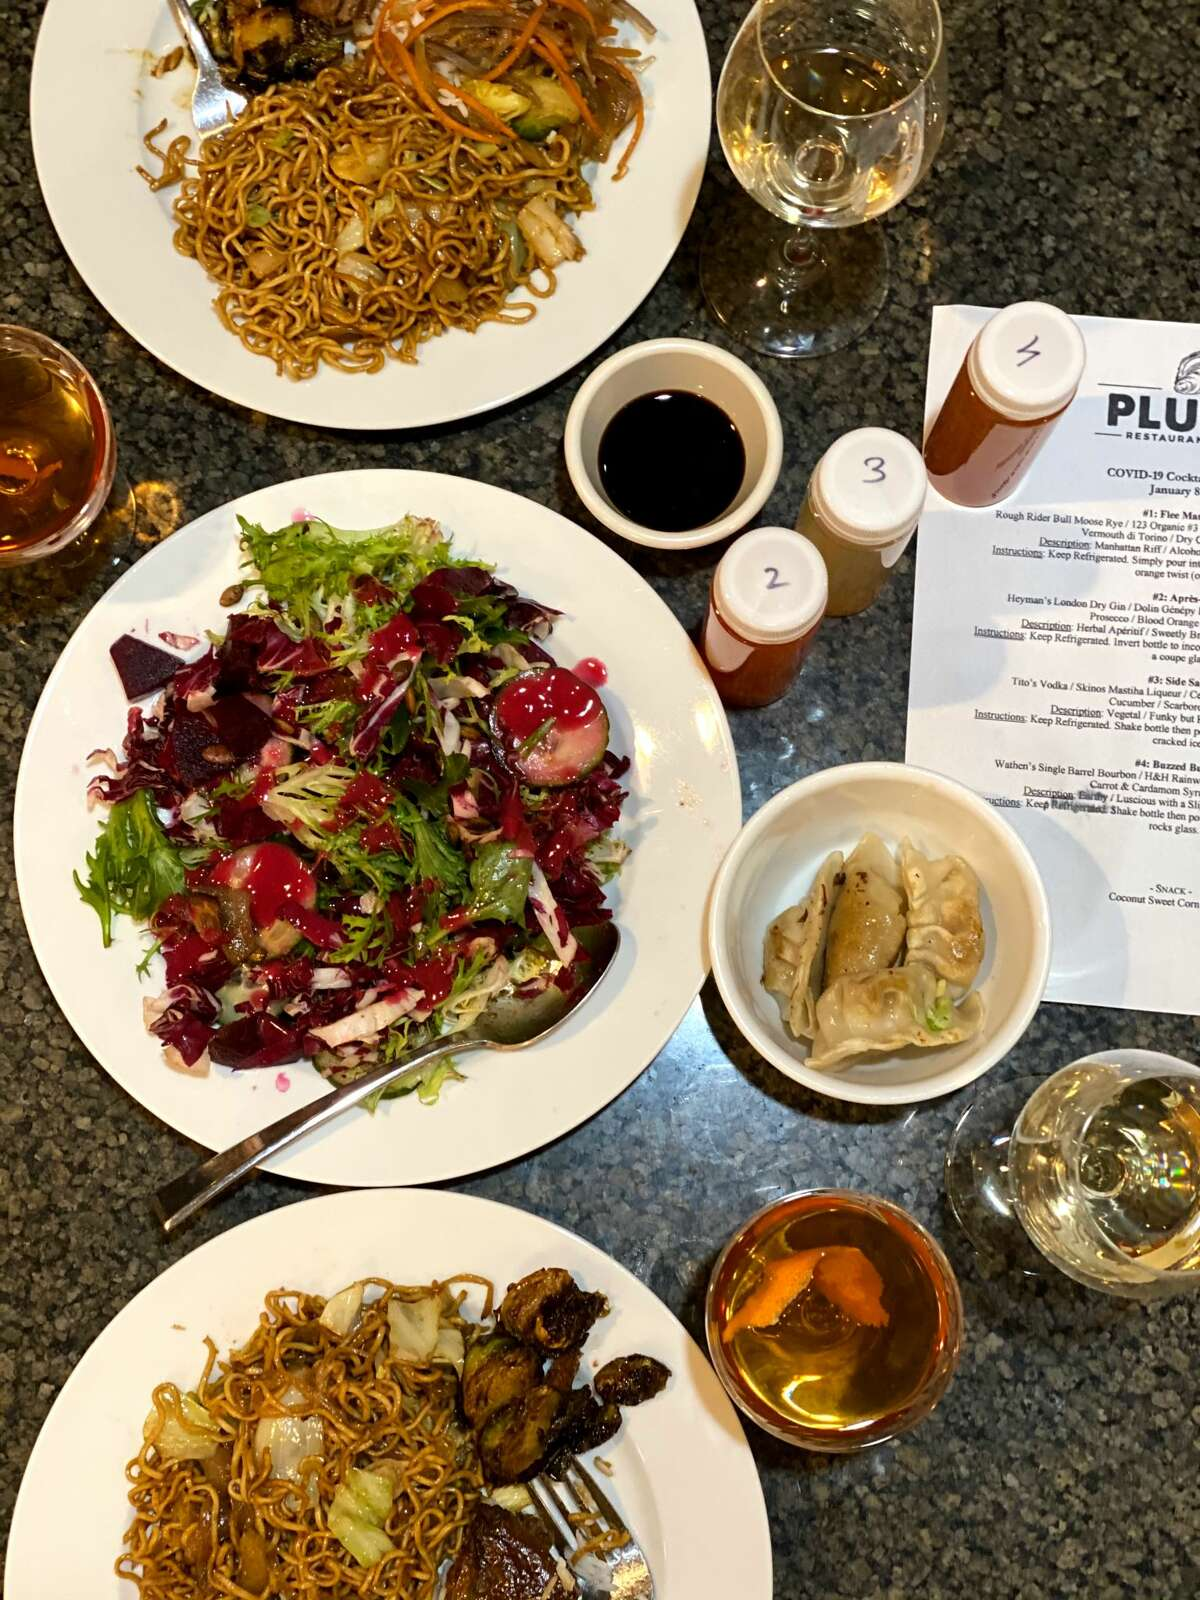 Susie Davidson Powell's multicourse takeout meal from dp: An American Brasserie included the restaurant's signature stir-fried noodles, called bakmi goreng (top and bottom plates), salad with roasted beets (middle) and, at center right, dumplings. (Photo by Susie Davidson Powell.)